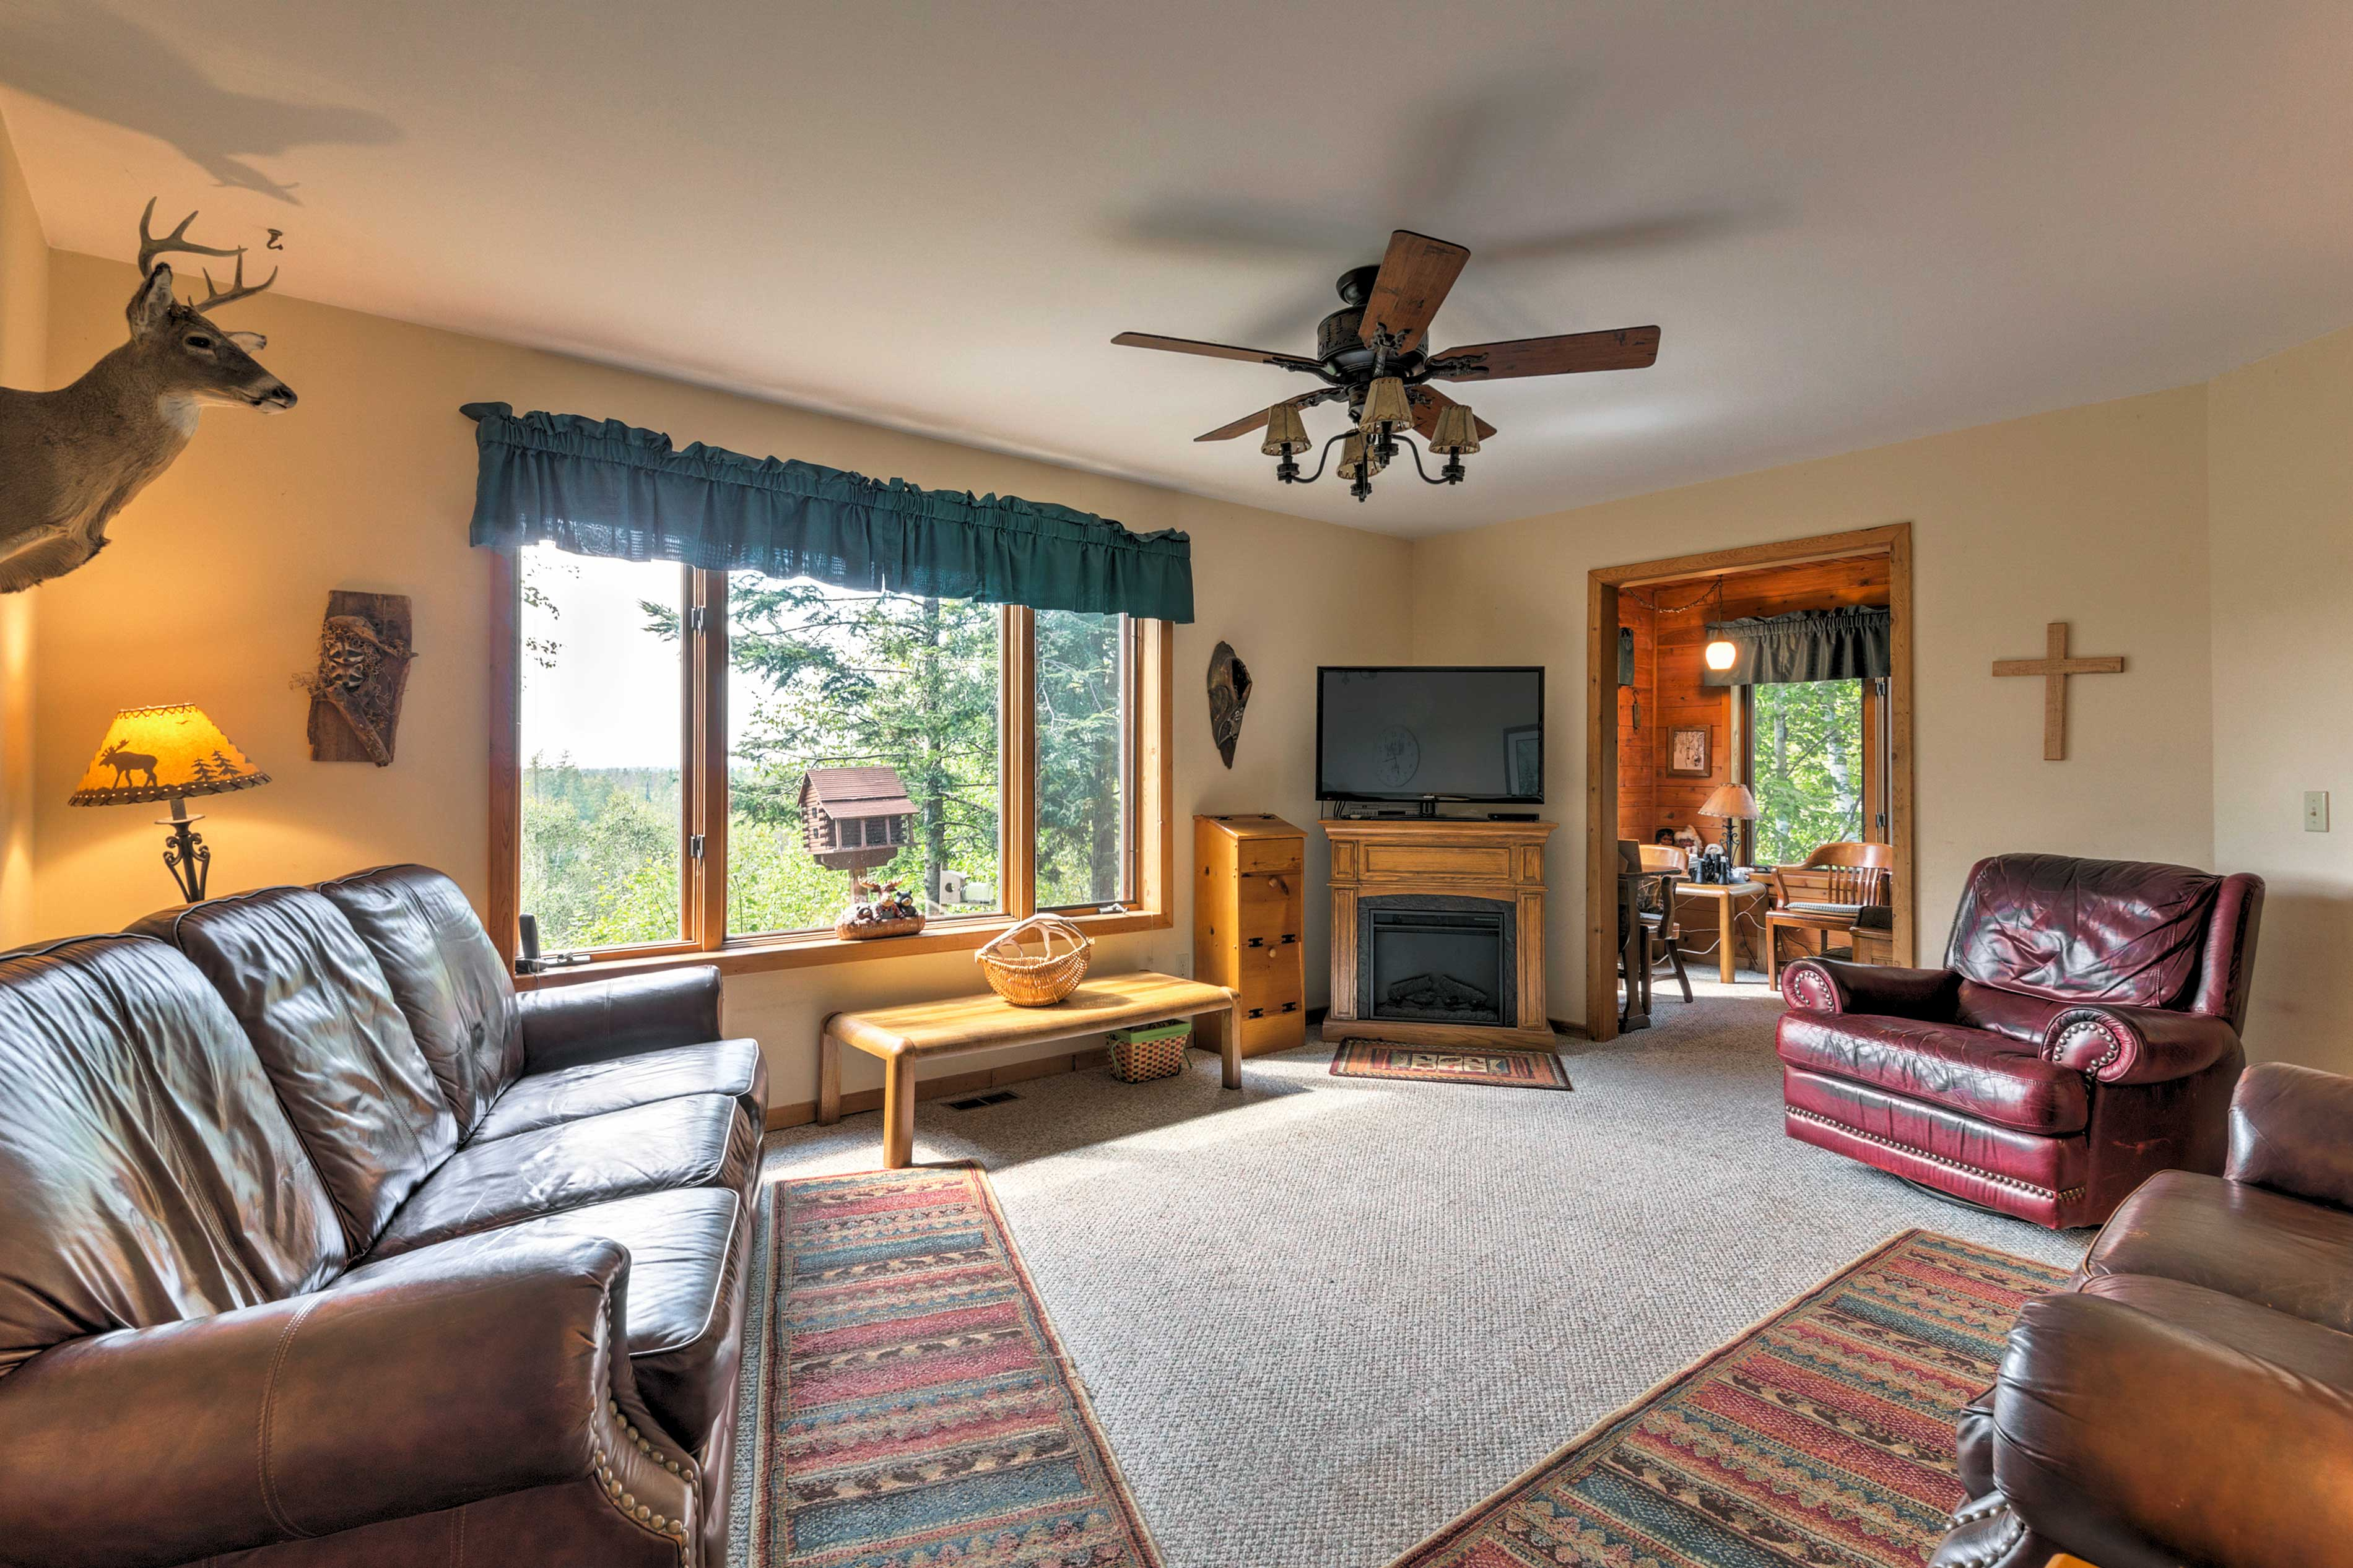 The 1,704-square-foot interior of the cabin is adorned with cozy furnishings.